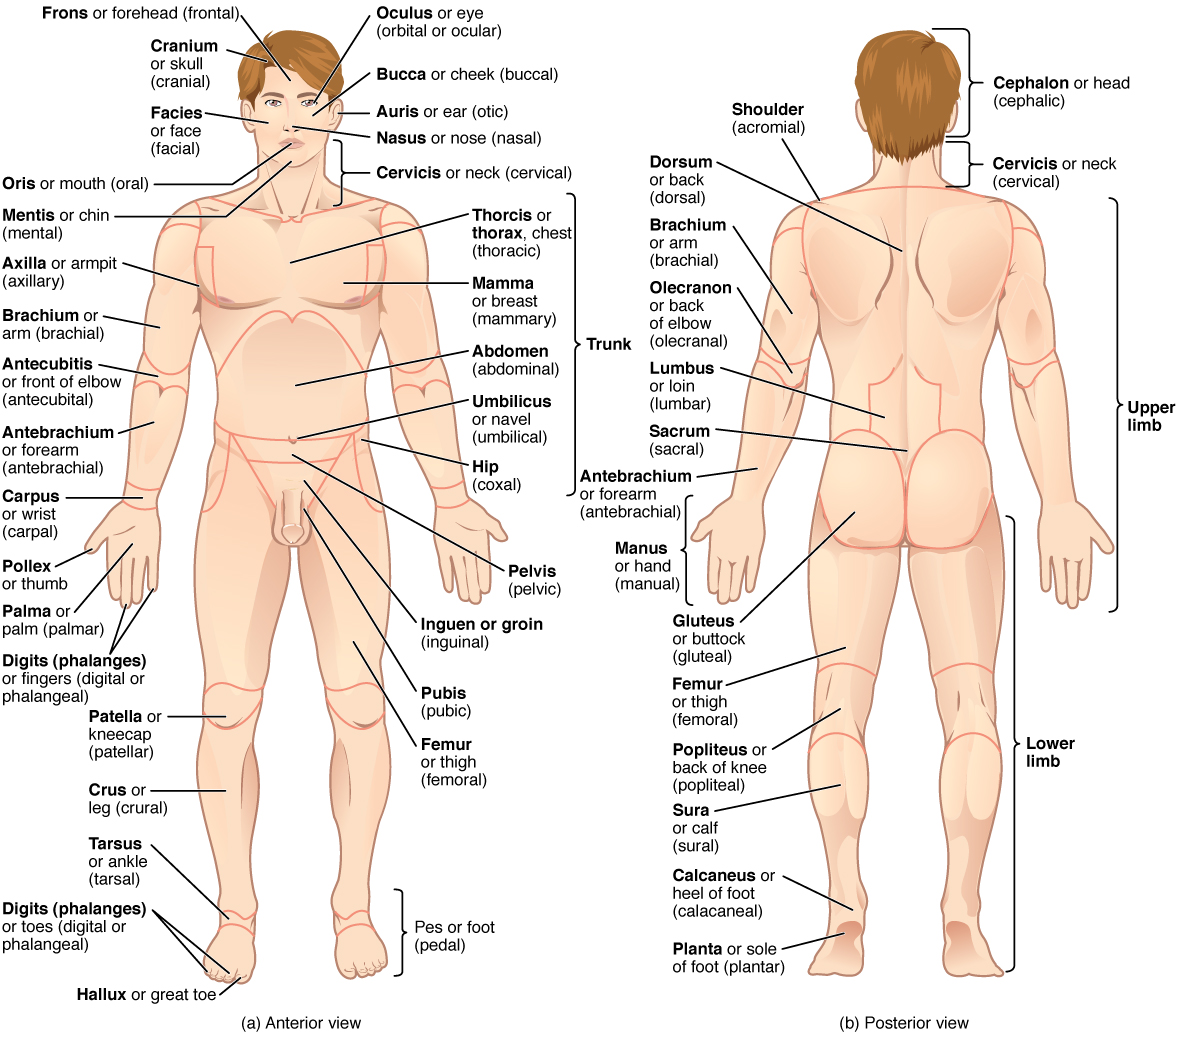 List of human anatomical regions - Wikipedia